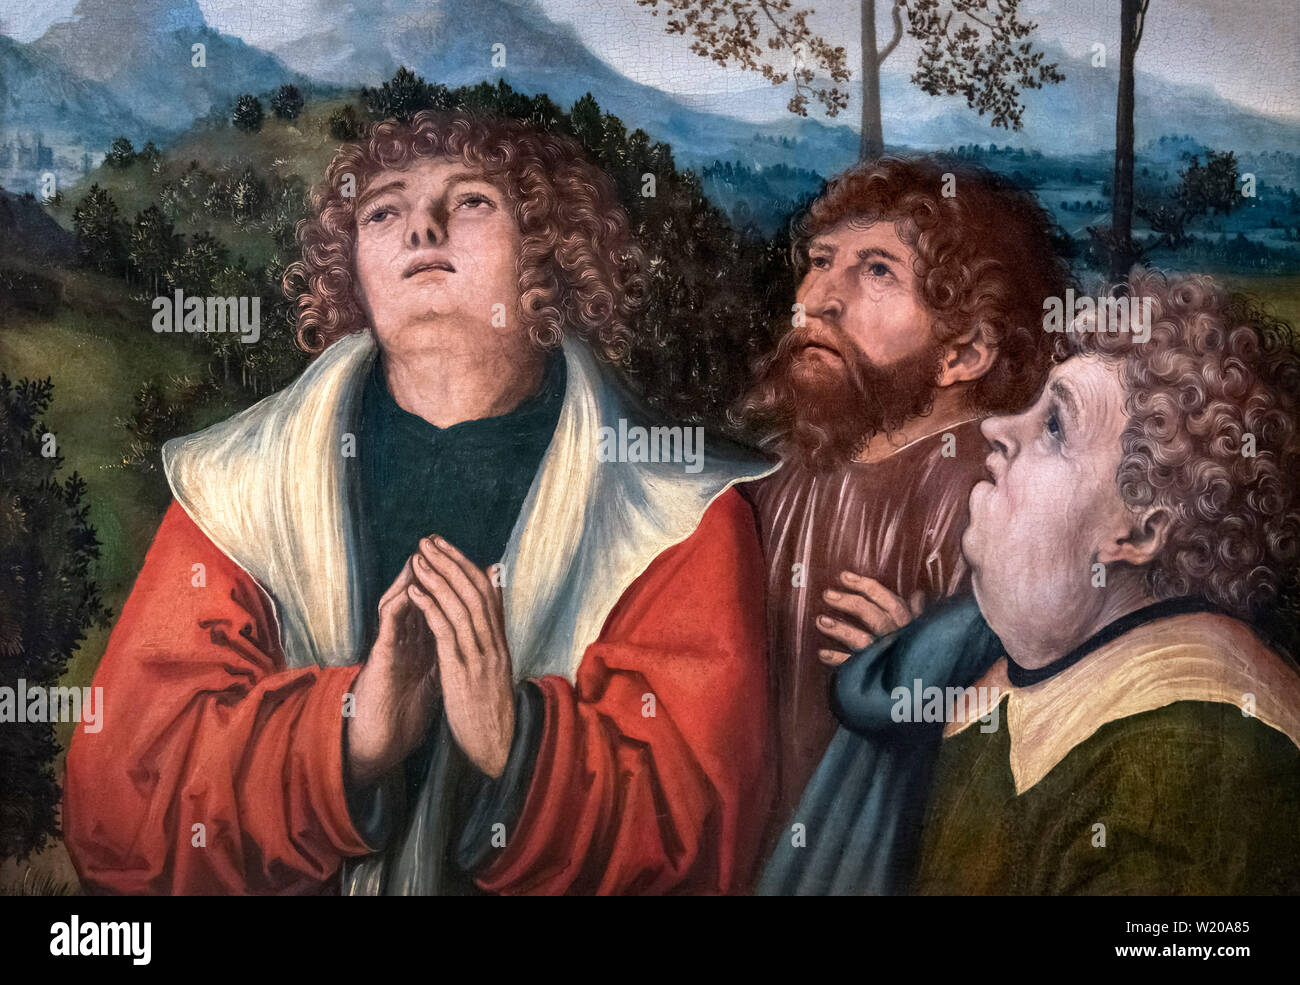 The Three Apostles (a fragment of a larger work), attributed to Lucas Cranach the Elder (1472-1553), oil on wood, c.1515-20 - Stock Image